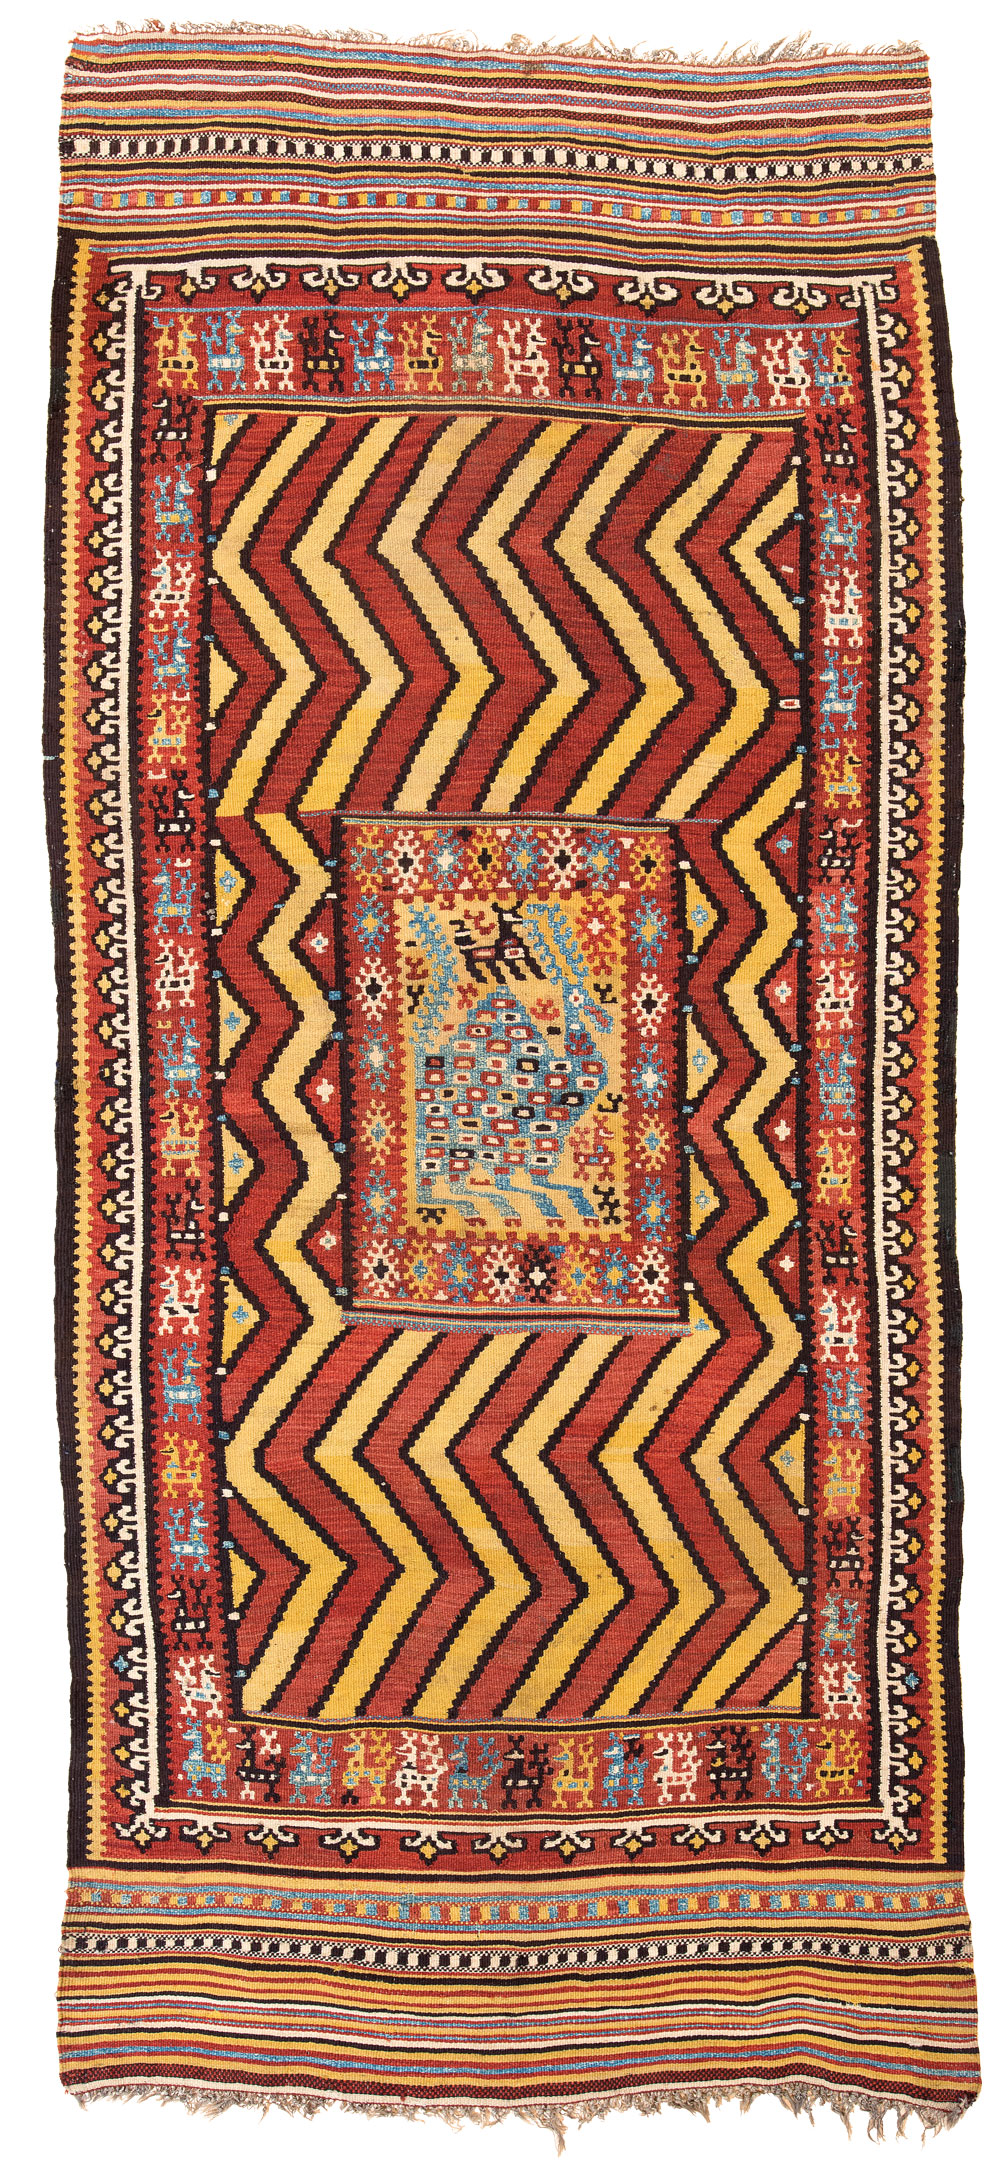 Click here to see Alberto Boralevi's article on a rare Italian peasant rug that will be shown at Sartirana